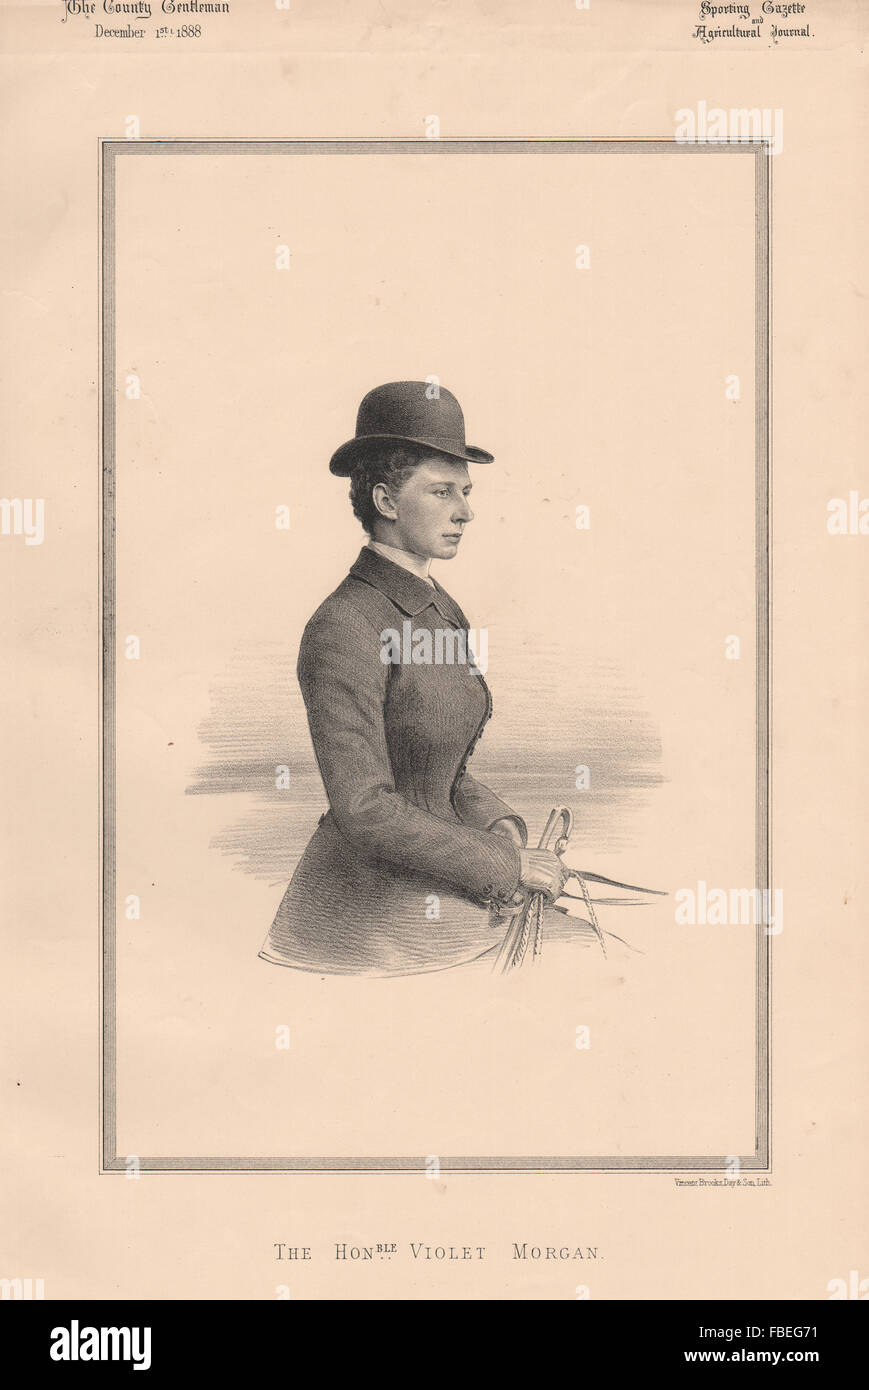 The Honourable Violet Morgan, antique print 1888 - Stock Image